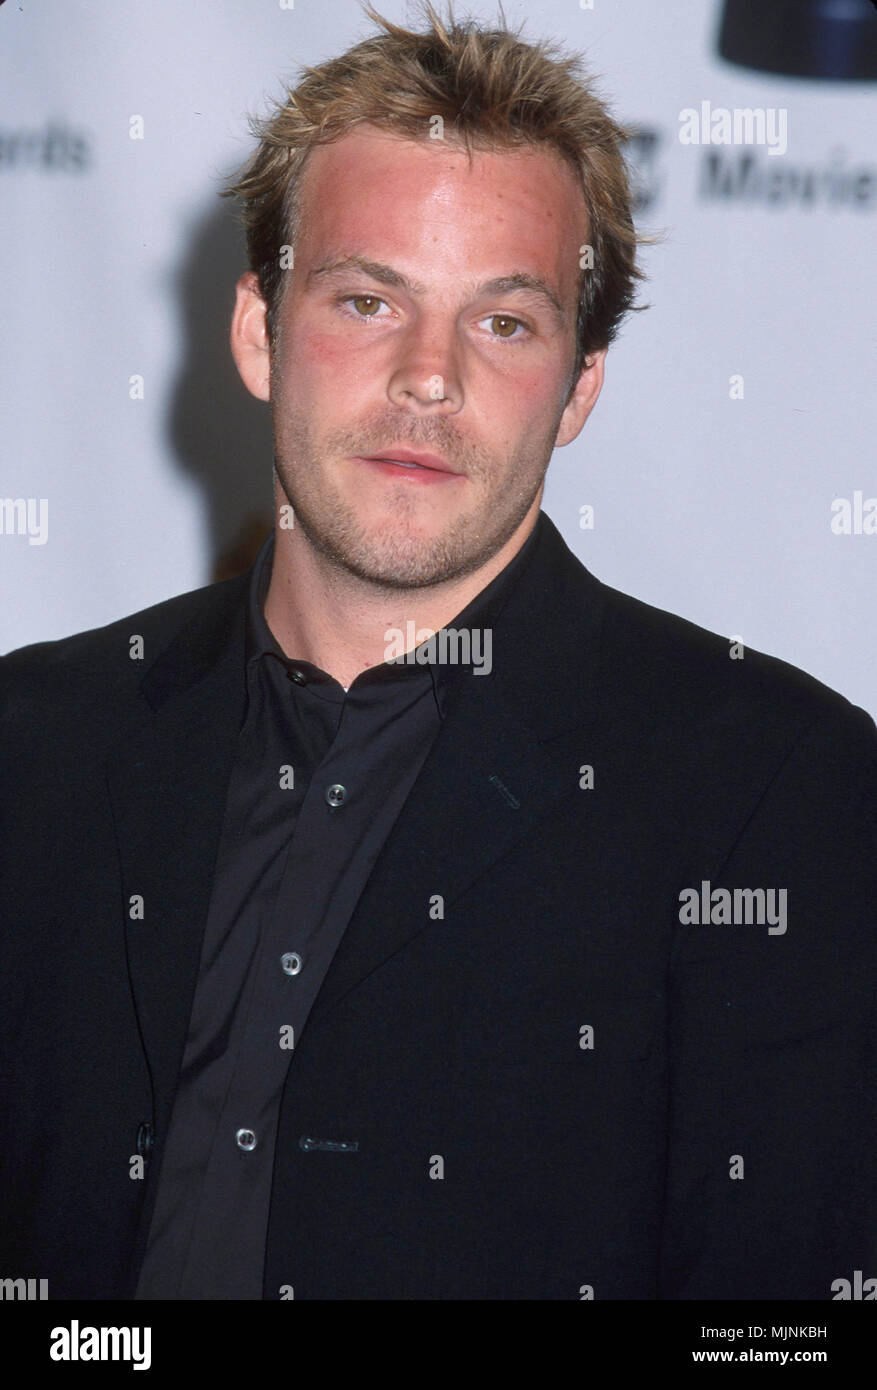 Portrait of Stephen Dorff --- ' Tsuni / - 'Stephen Dorff Stephen Dorff one person, Vertical, Best of, Hollywood Life, Event in Hollywood Life - California,  Red Carpet Event, Vertical, USA, Film Industry, Celebrities,  Photography, Bestof, Arts Culture and Entertainment, , , Topix - Stock Image